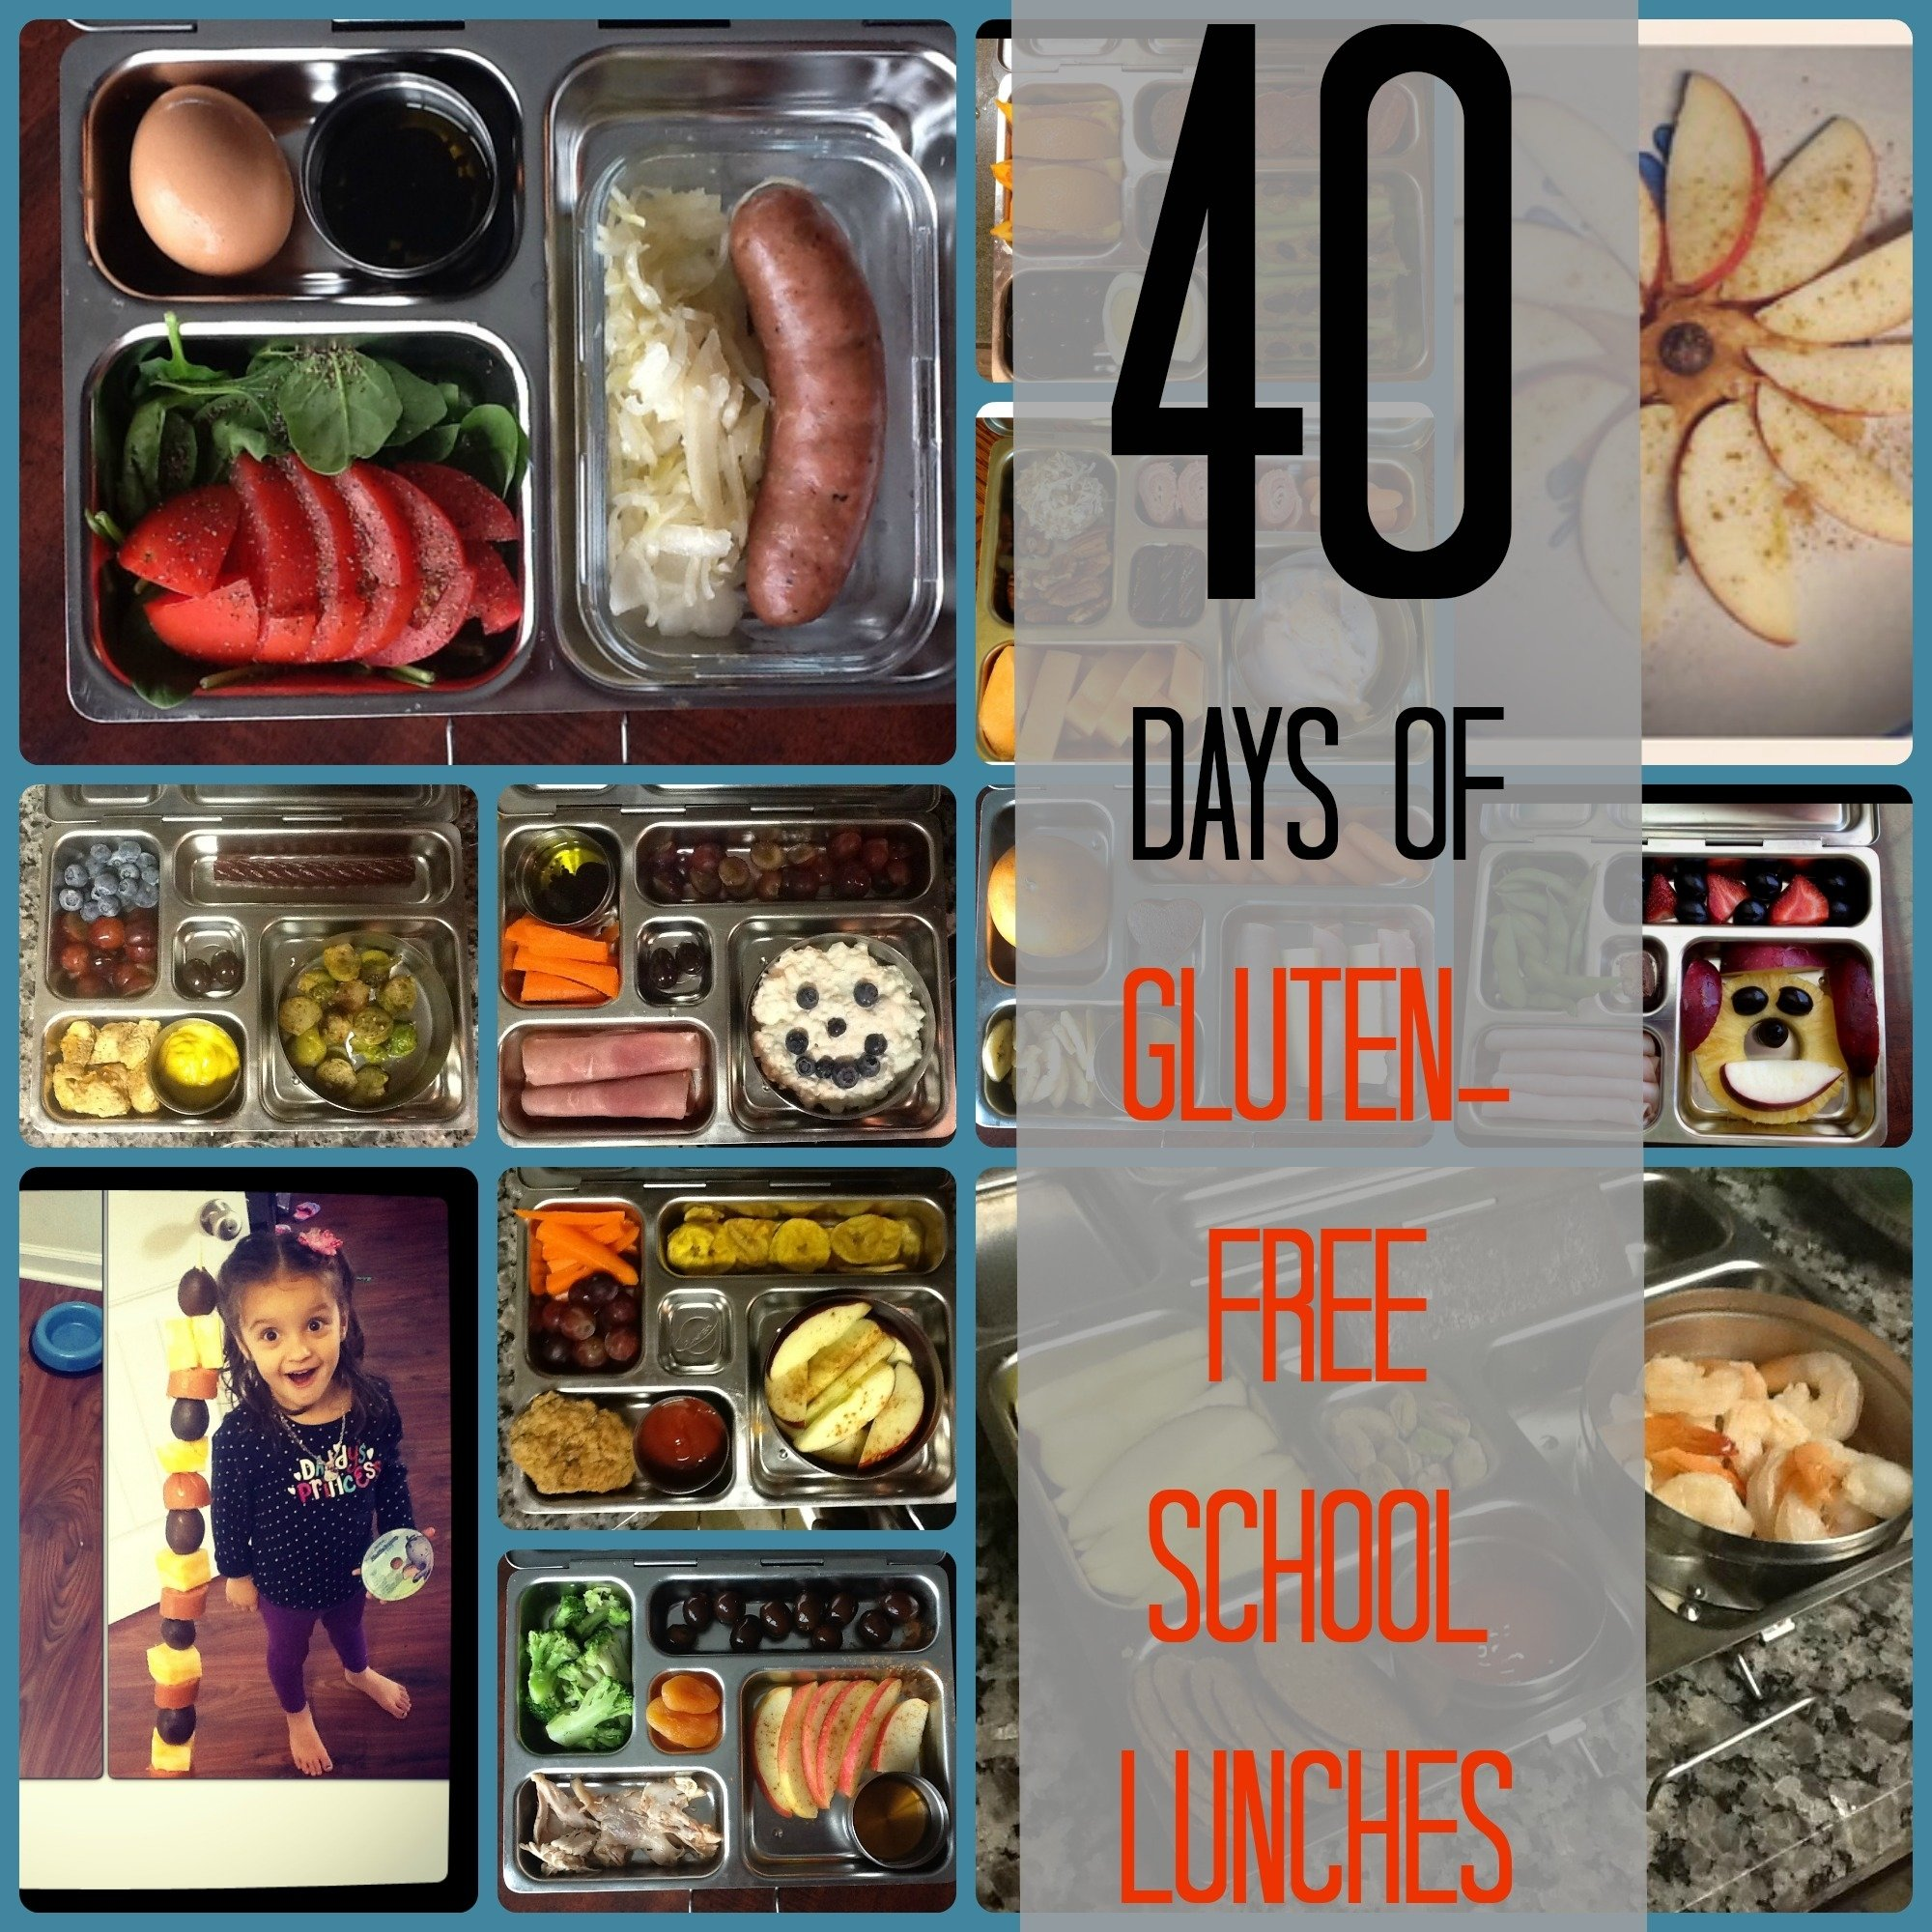 10 Wonderful Paleo Lunch Ideas For Kids 40 days of gluten free school lunches the paleo mama 2021